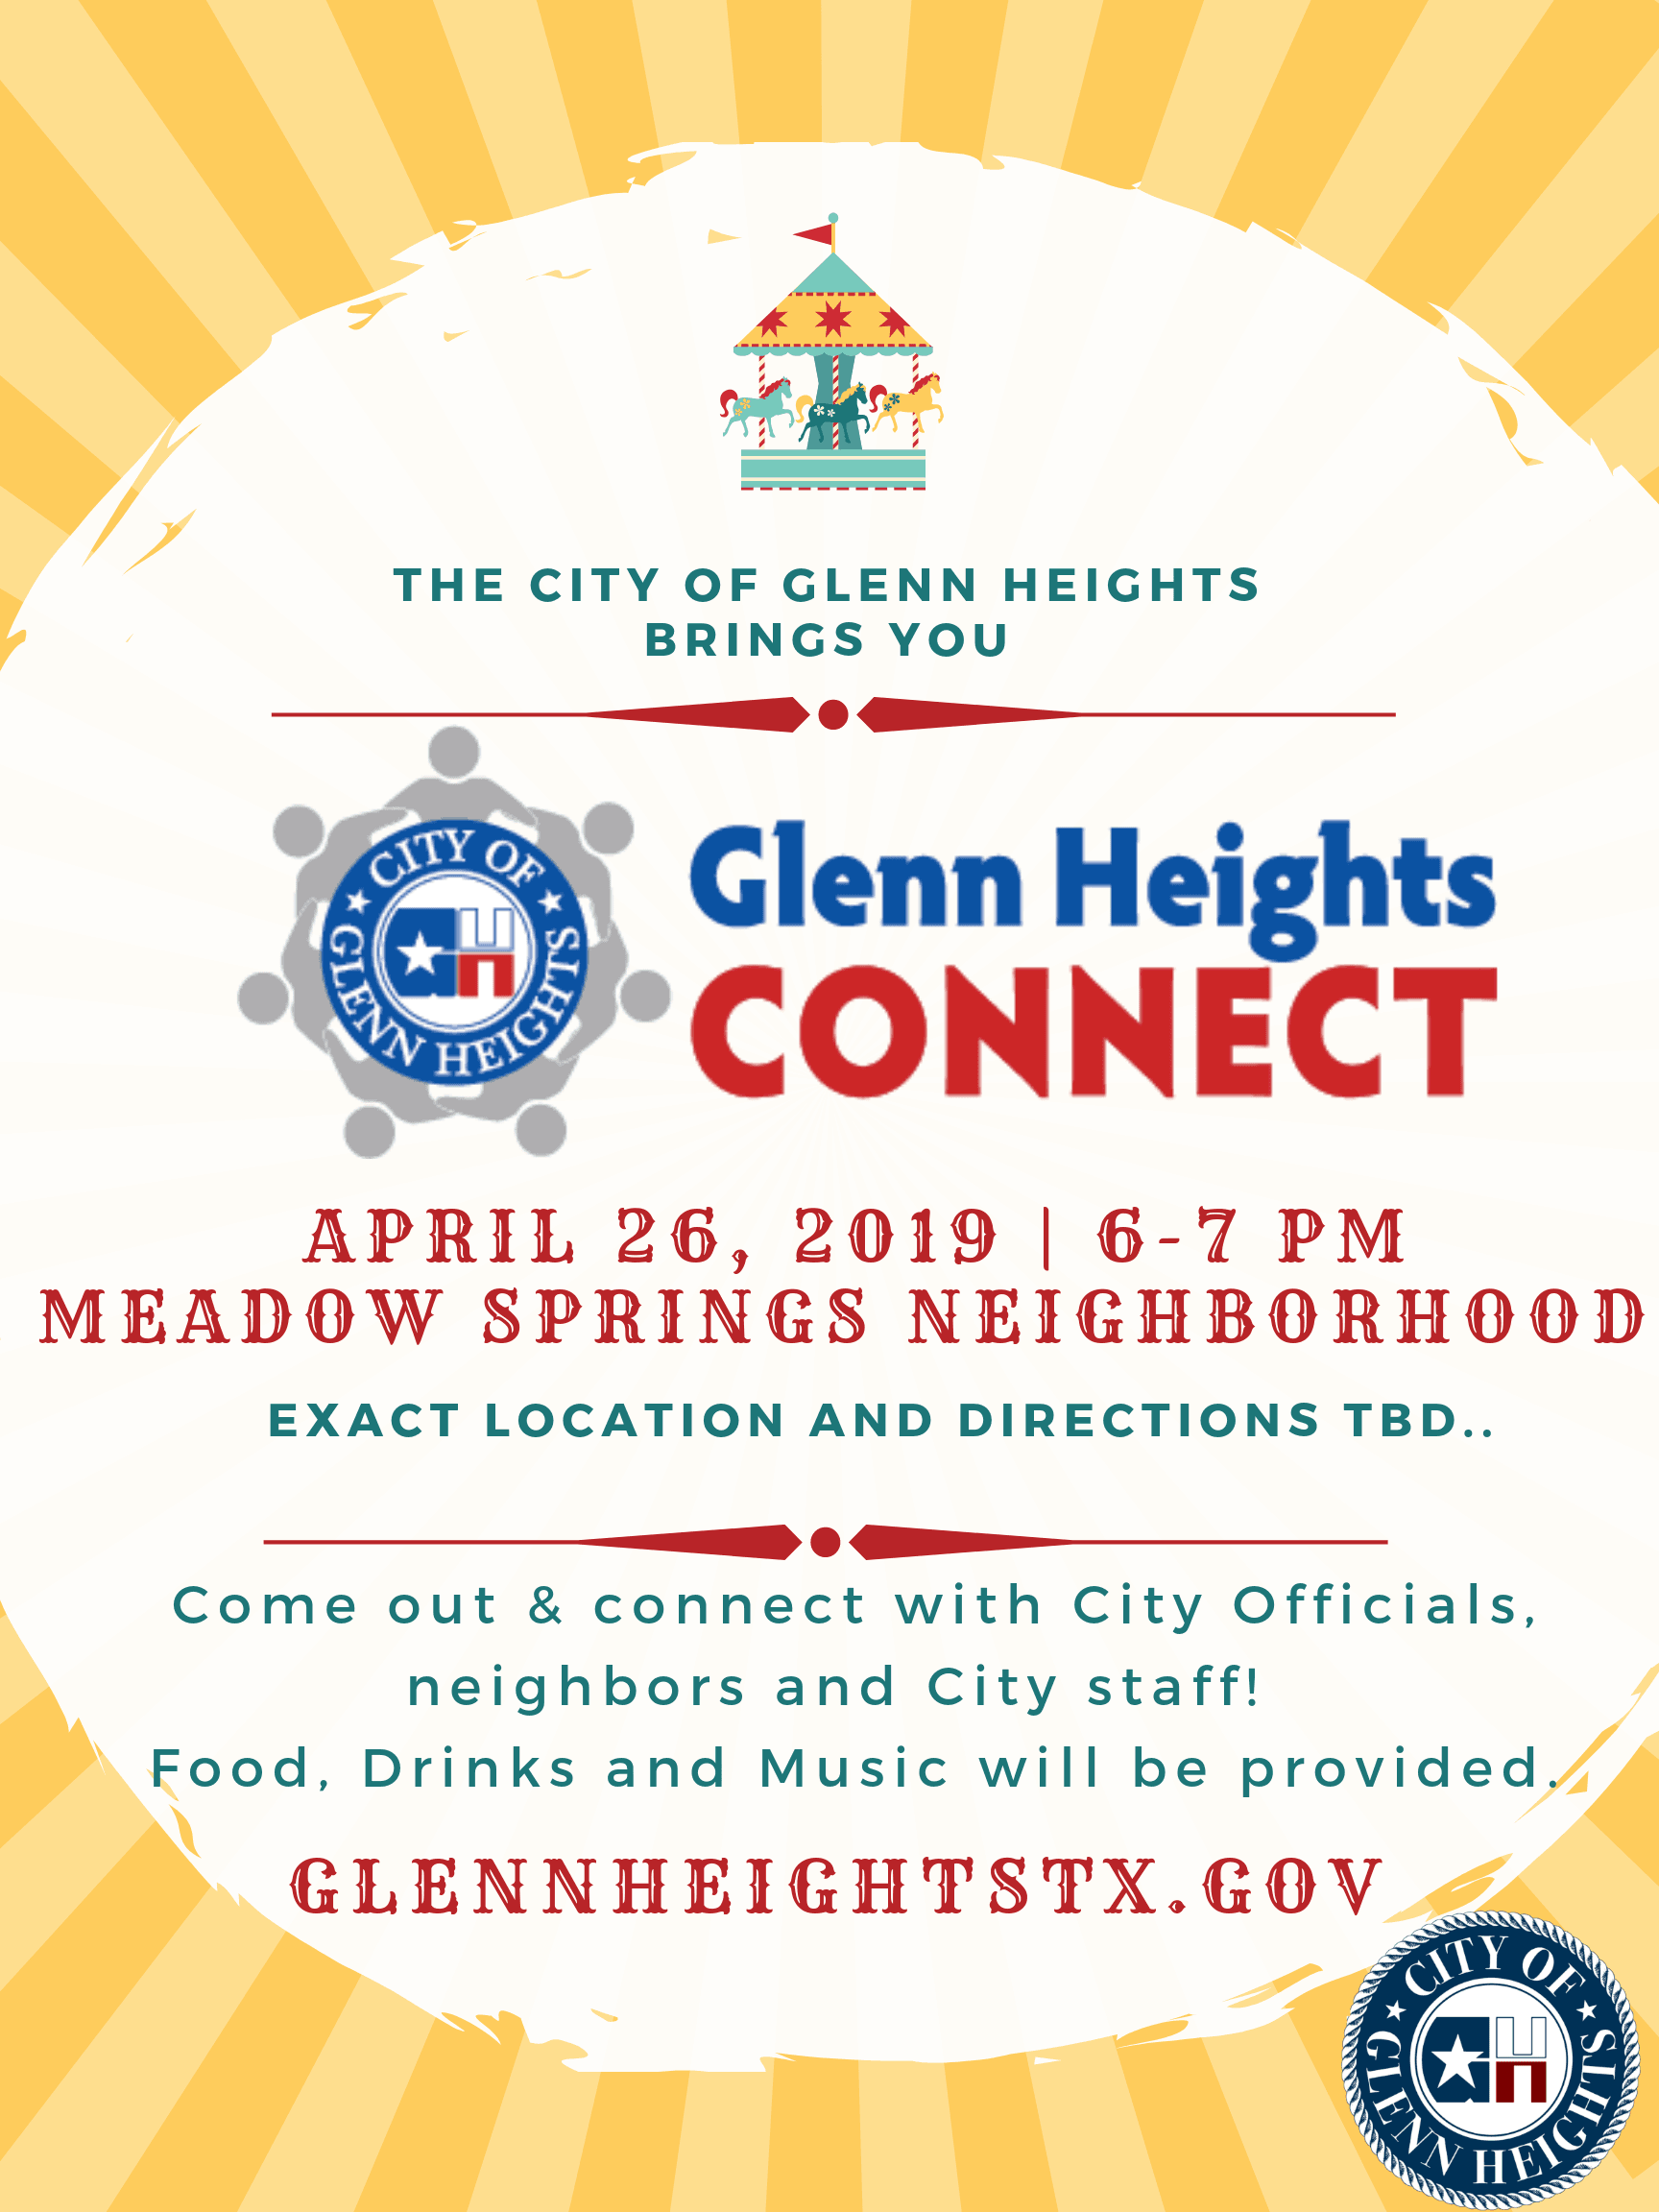 2019 Glenn Heights Connect Flyer (JPG)